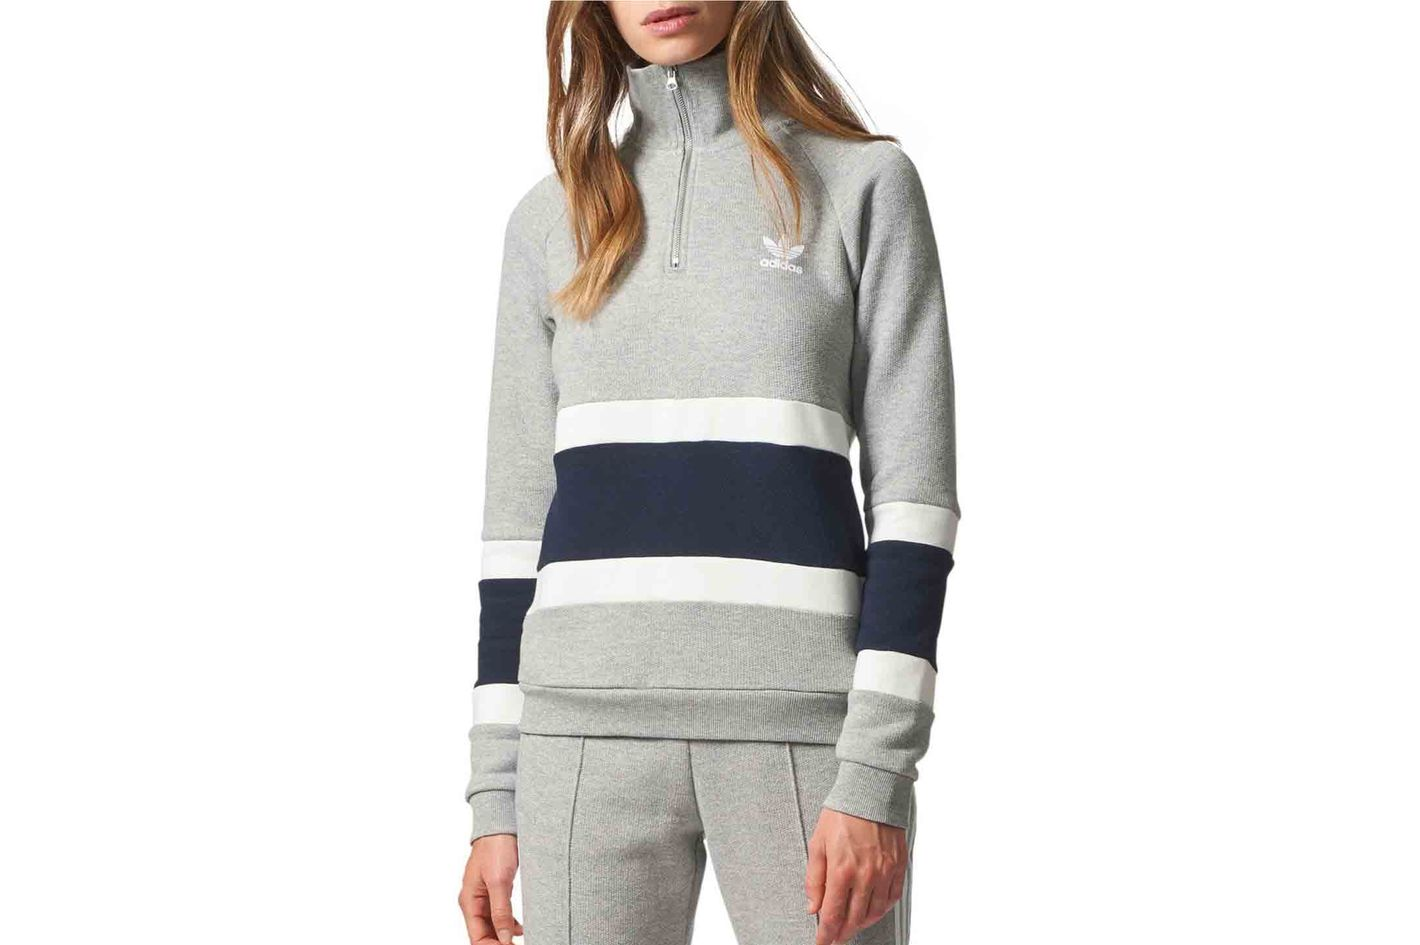 Adidas Half-Zip Cotton Sweater